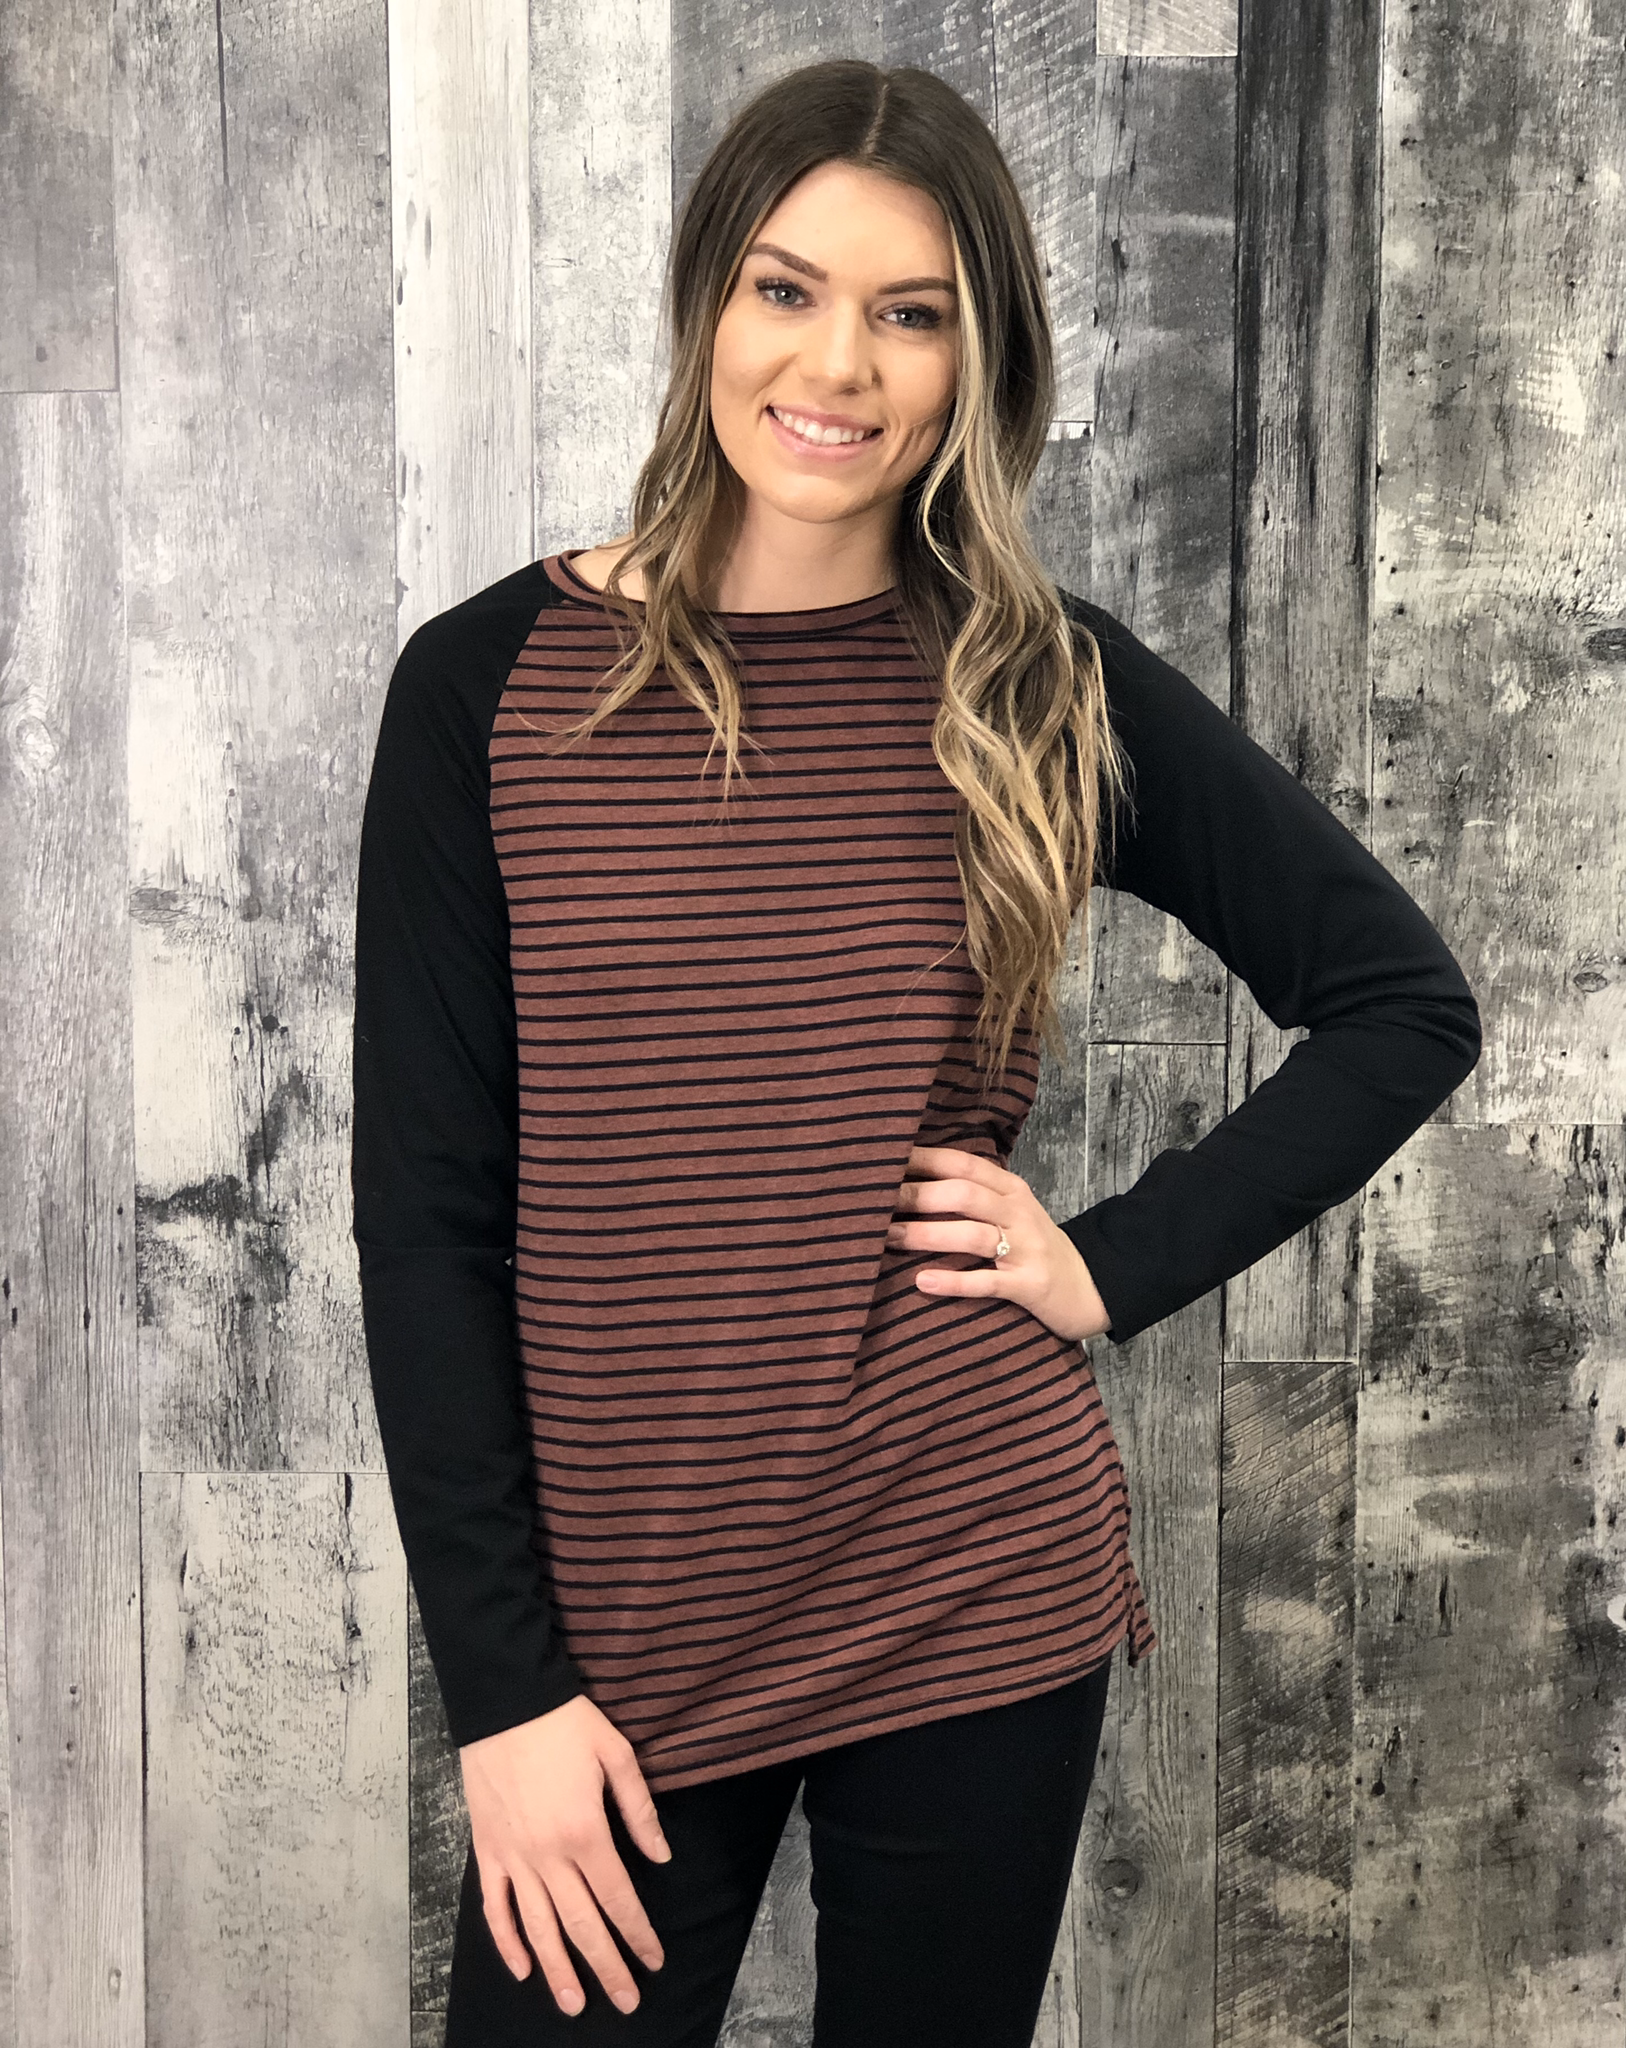 Burgundy Elbow Patch Striped Top 84556